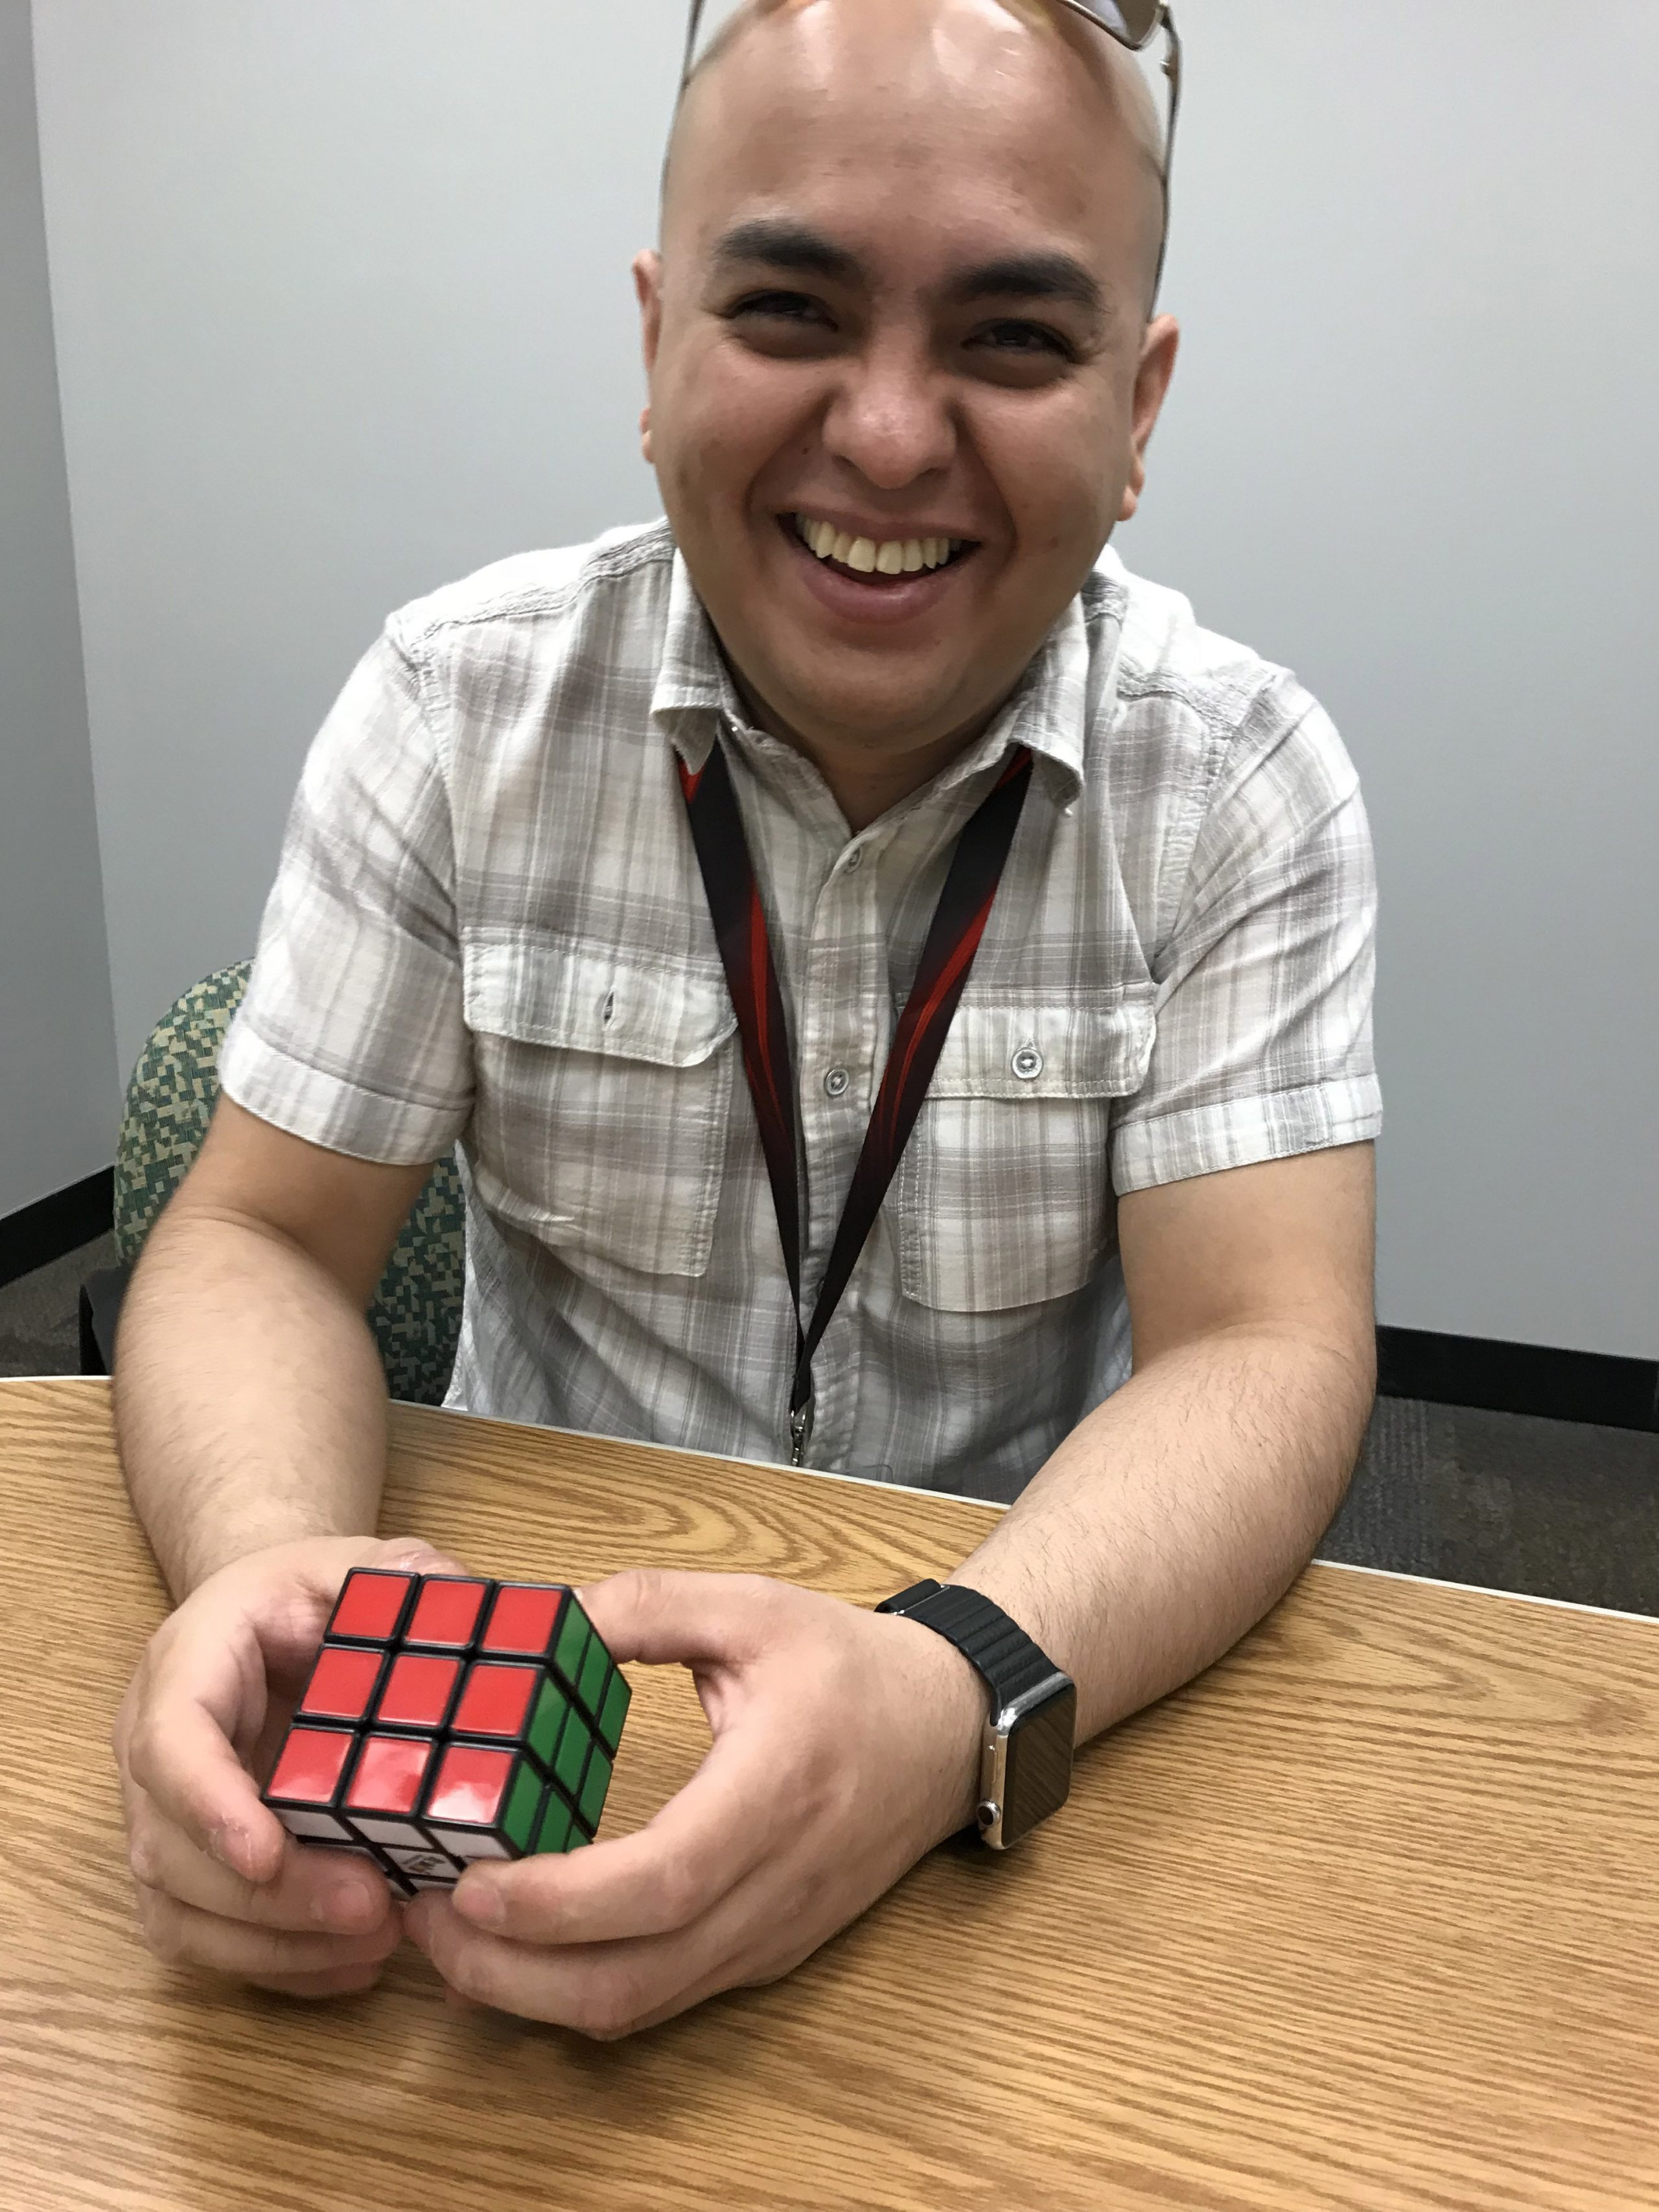 (2/2) He managed to solve it in about 30 seconds. Photo: Amy Scroggins, people